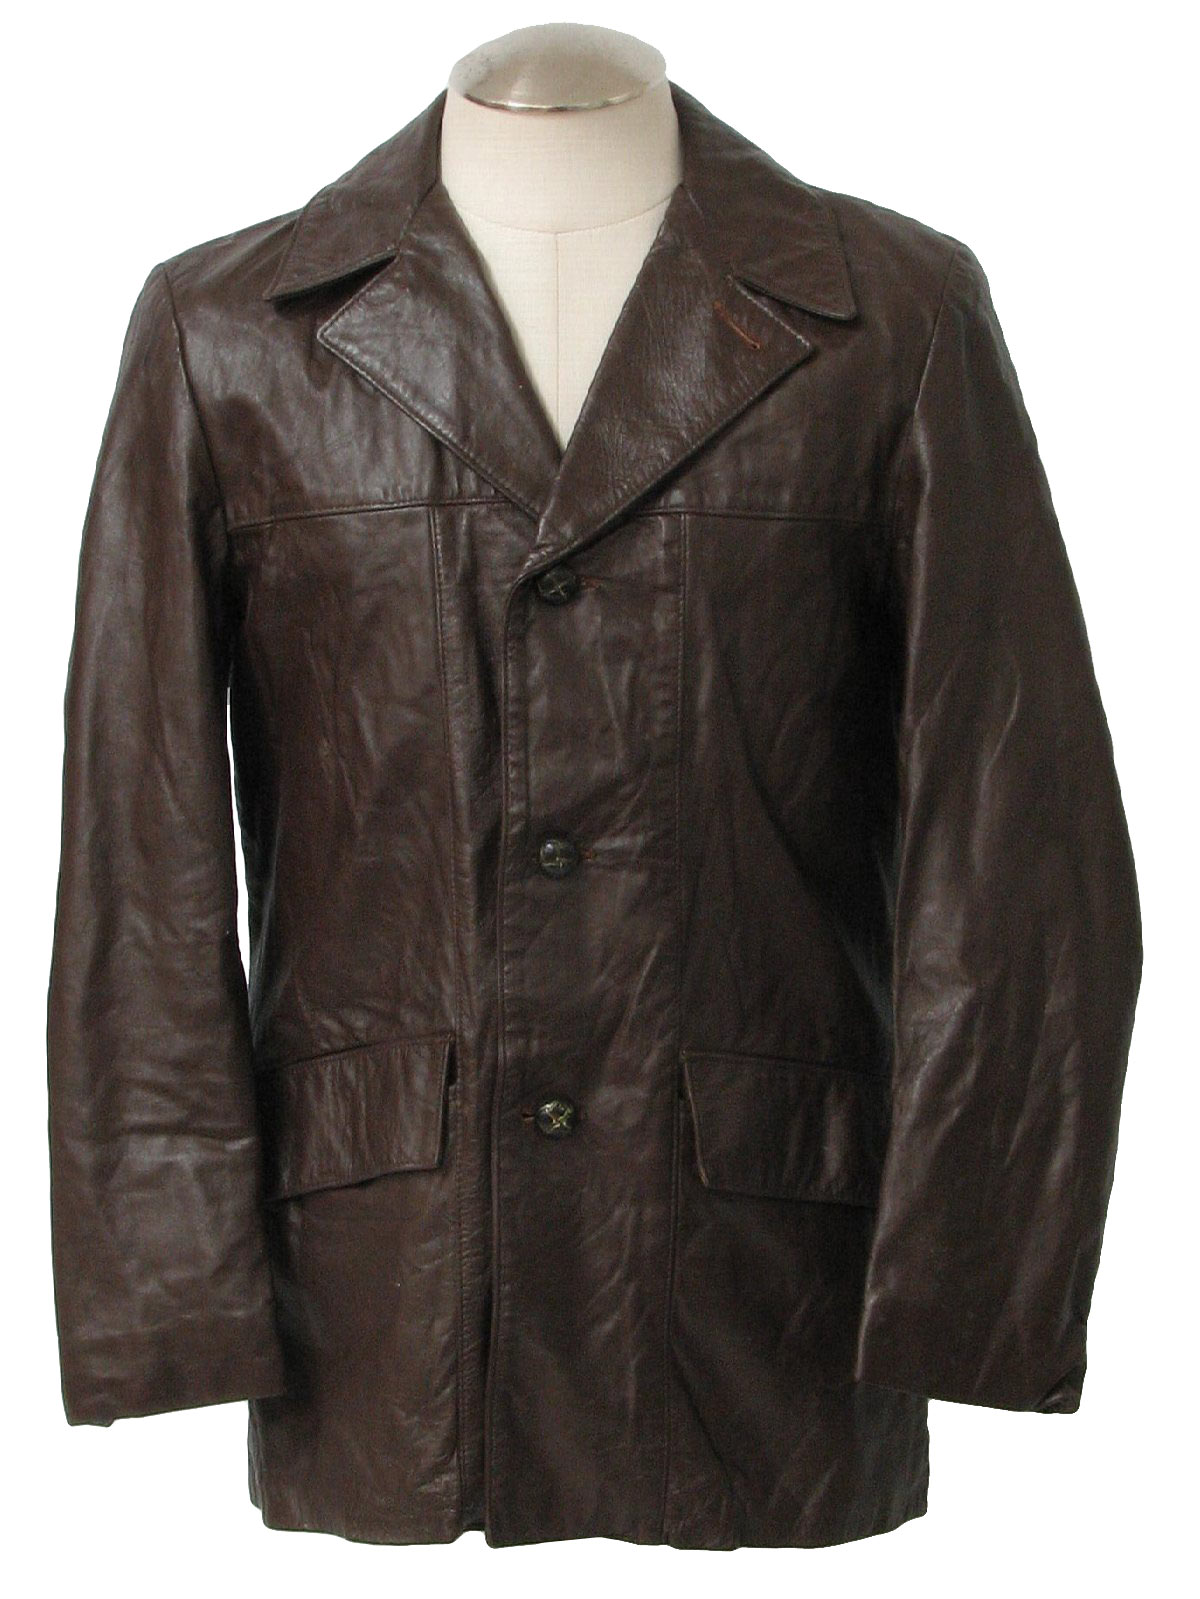 Vintage 1970's Leather Jacket: 70s -Missing Label- Mens dark brown